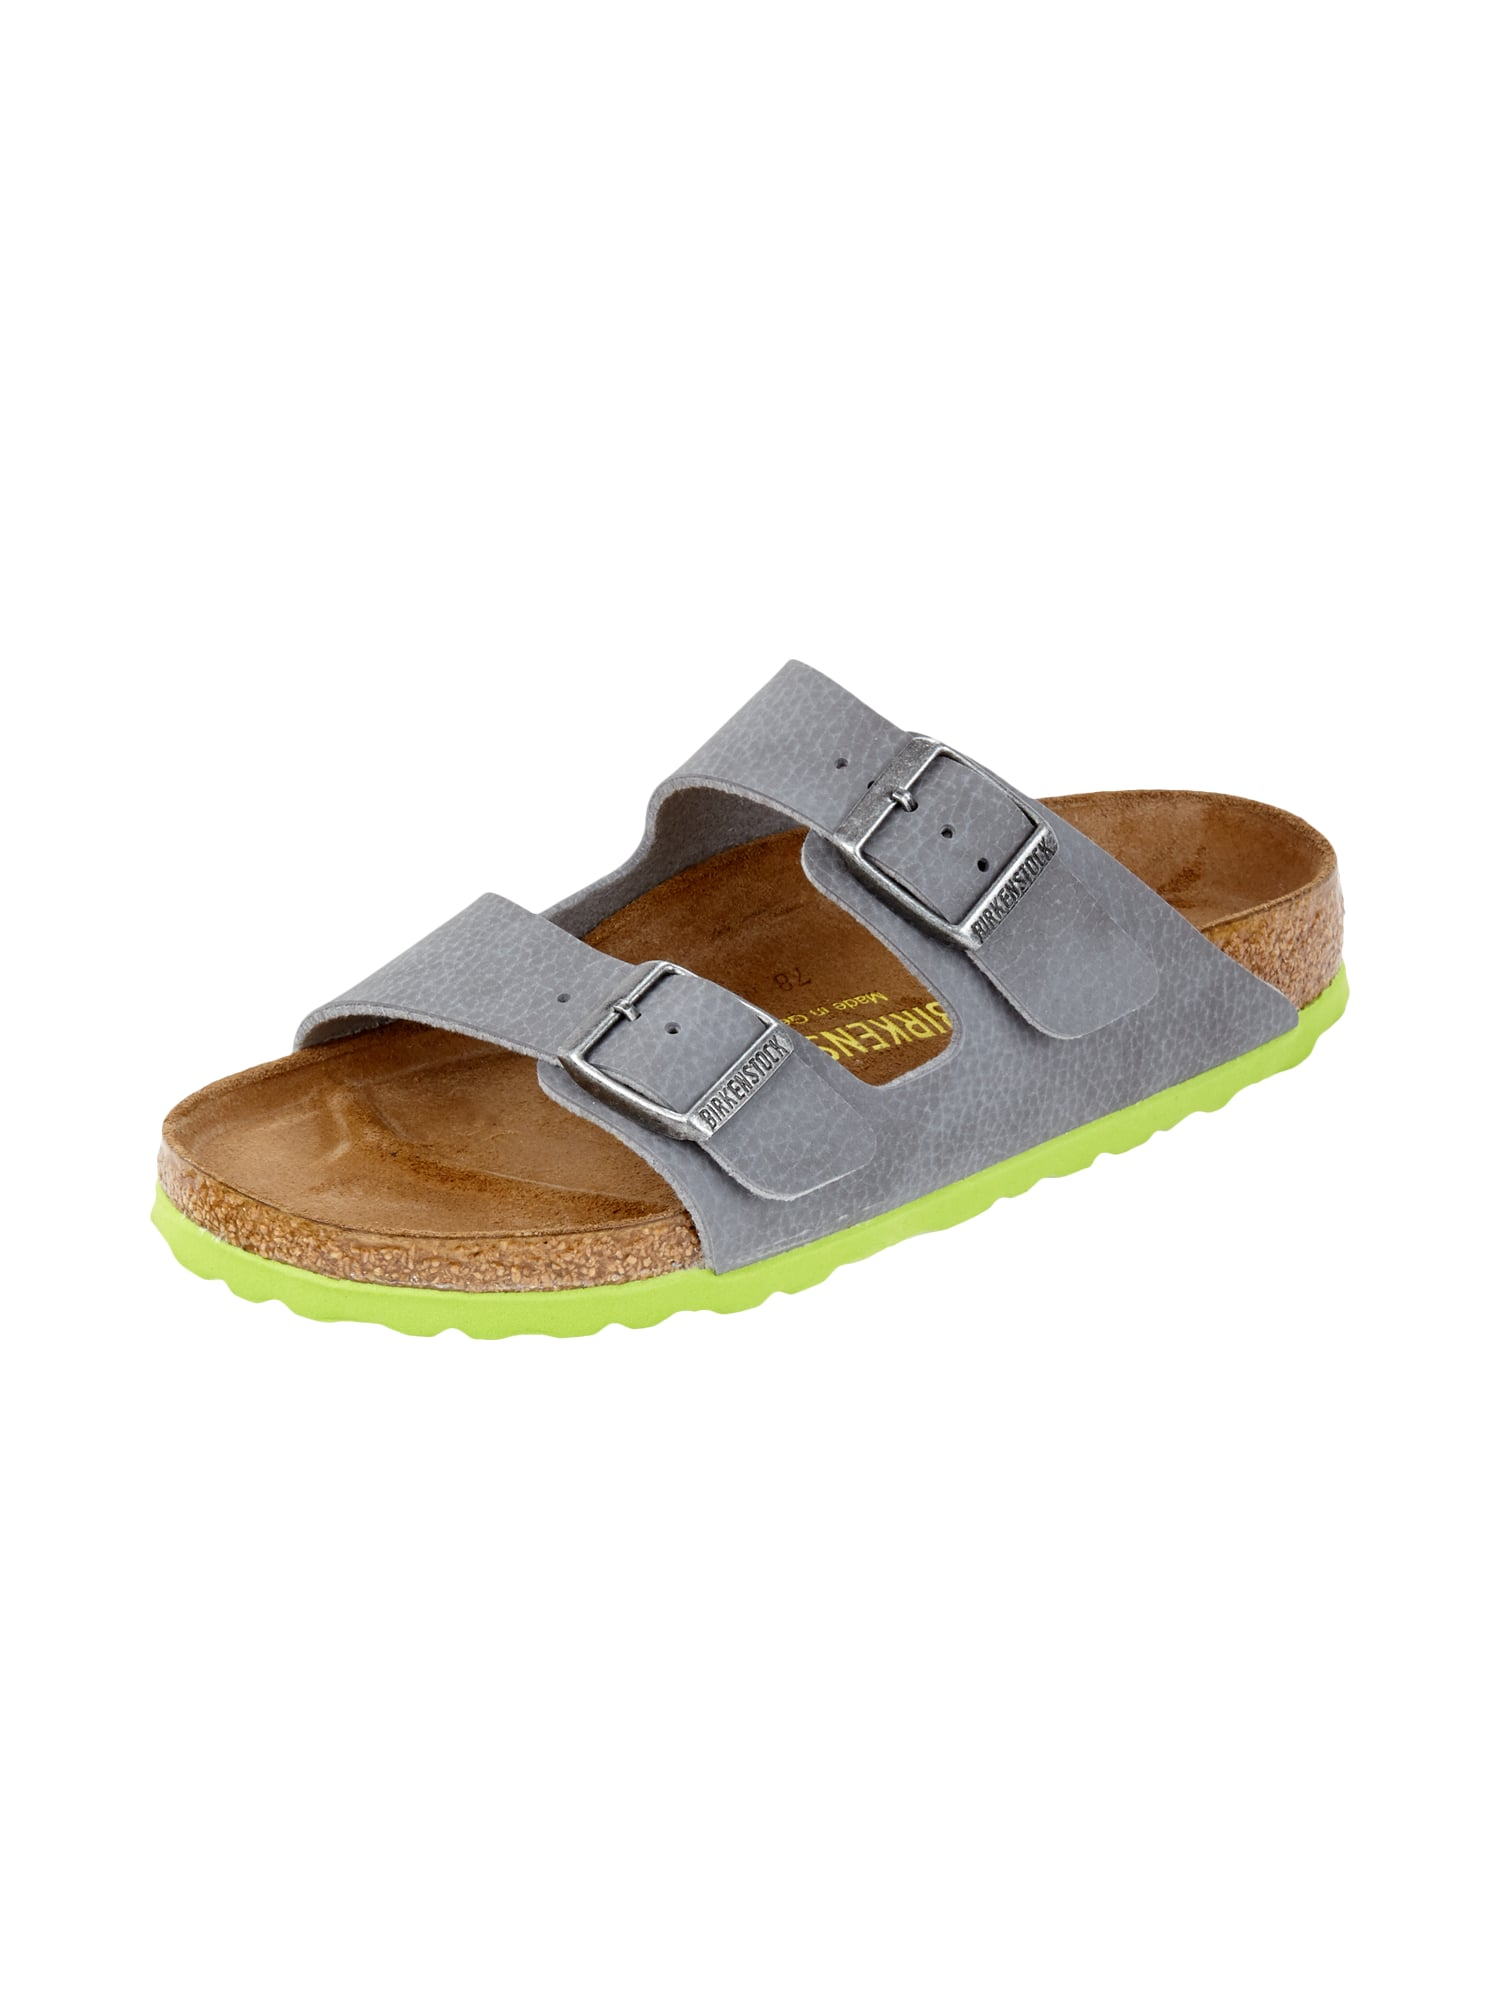 birkenstock sandalen mit ergonomischem fu bett in grau schwarz online kaufen 9445006 p c. Black Bedroom Furniture Sets. Home Design Ideas